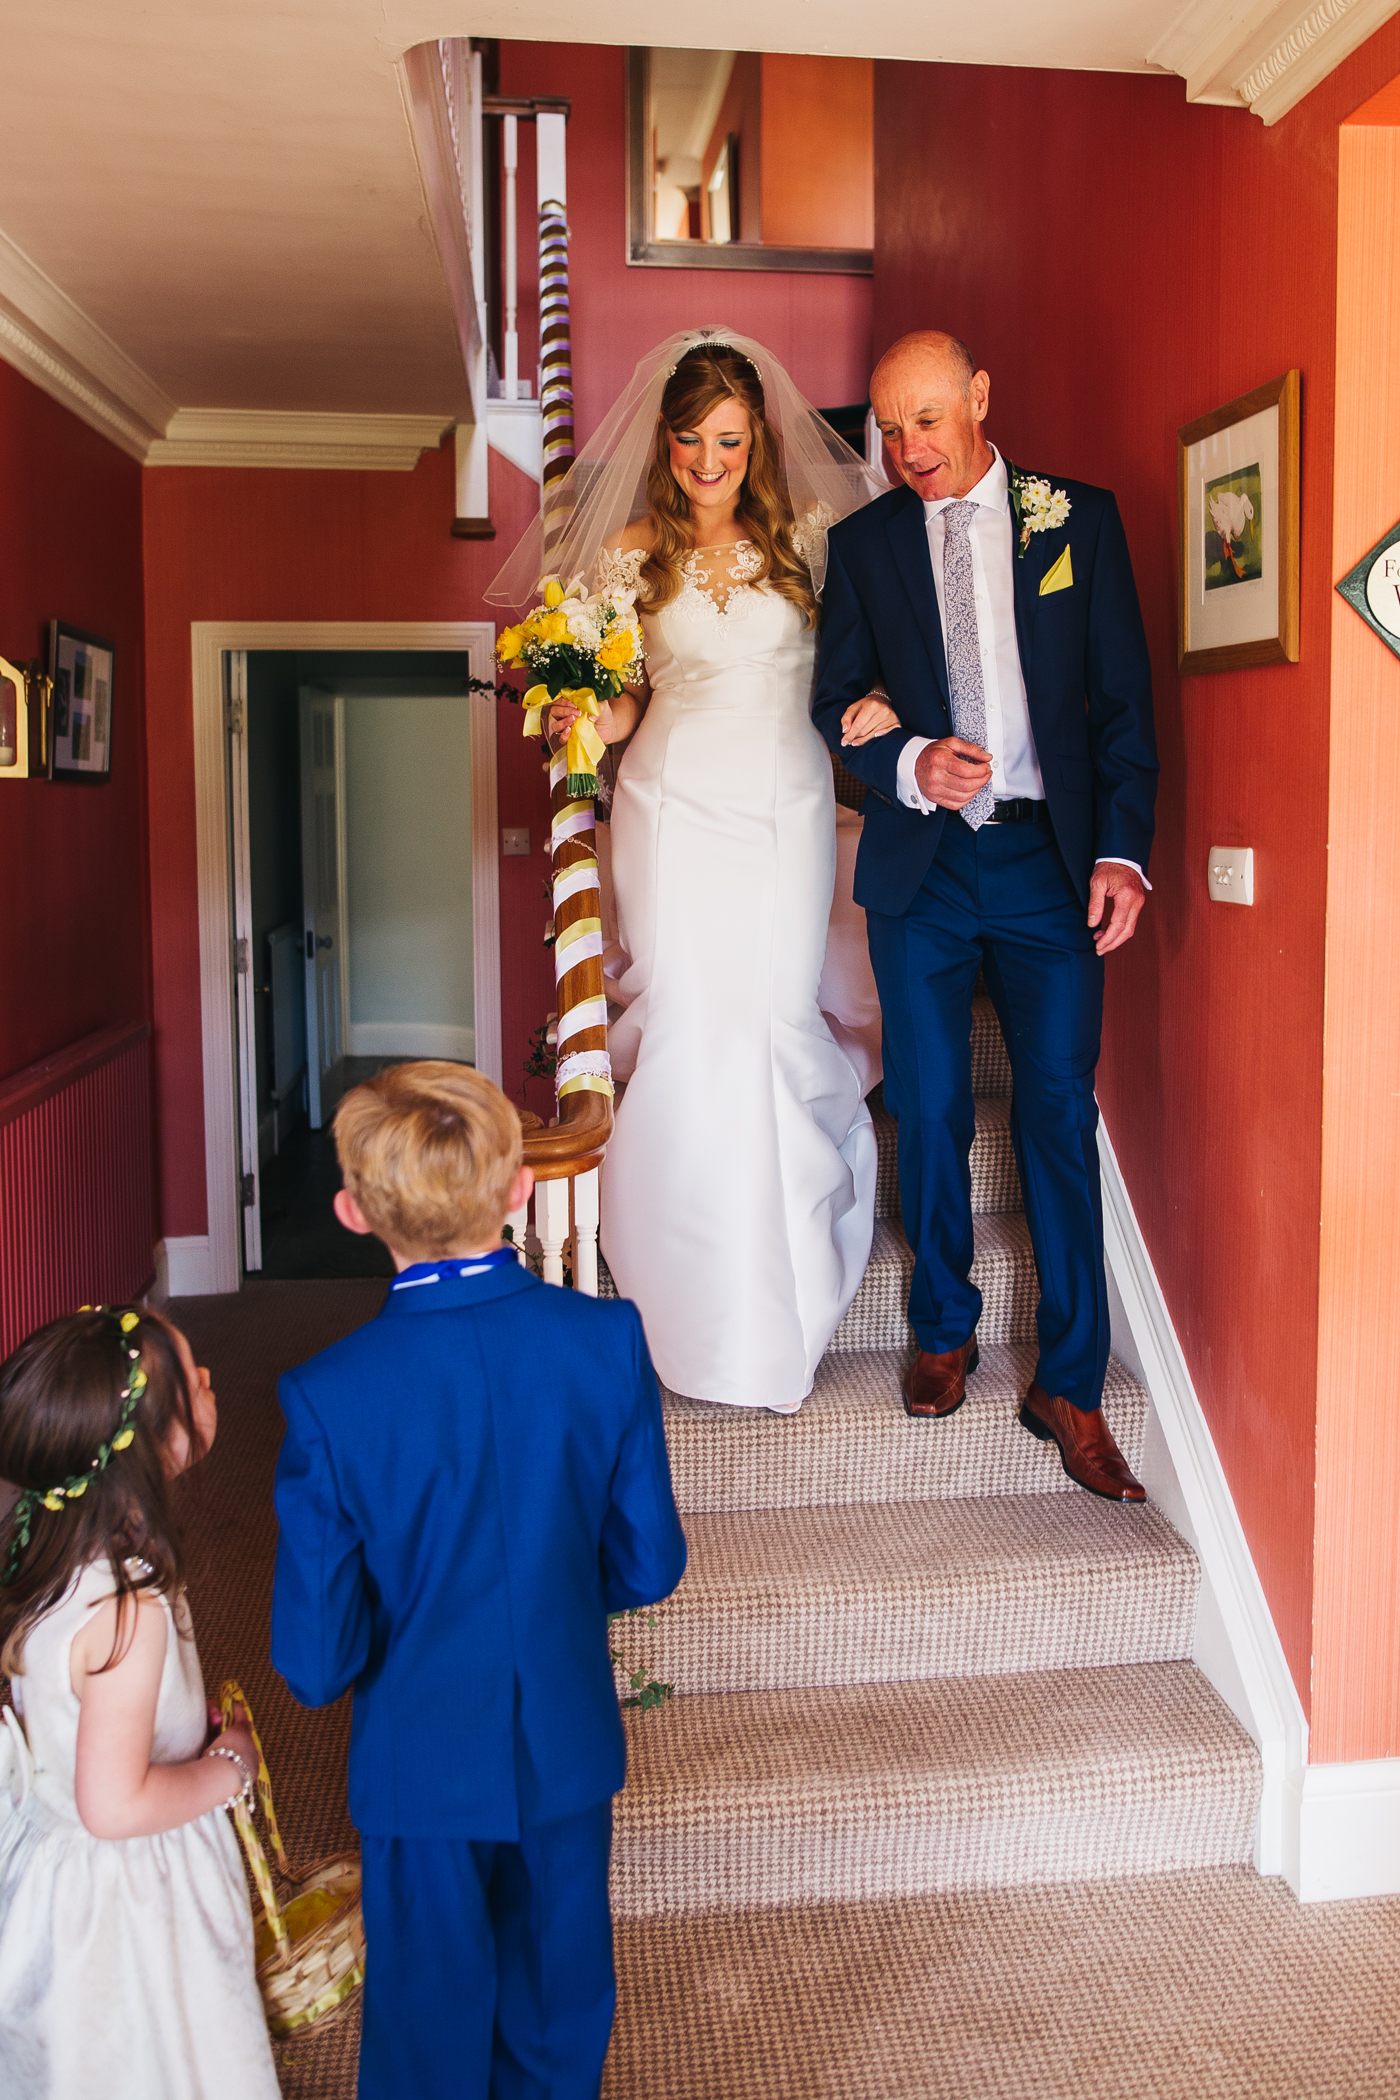 the bride and her dad come down the stairs and meet the page boy and flower girl. wedding at laskill house north yorkshire helmsley wedding photographer north east teesside